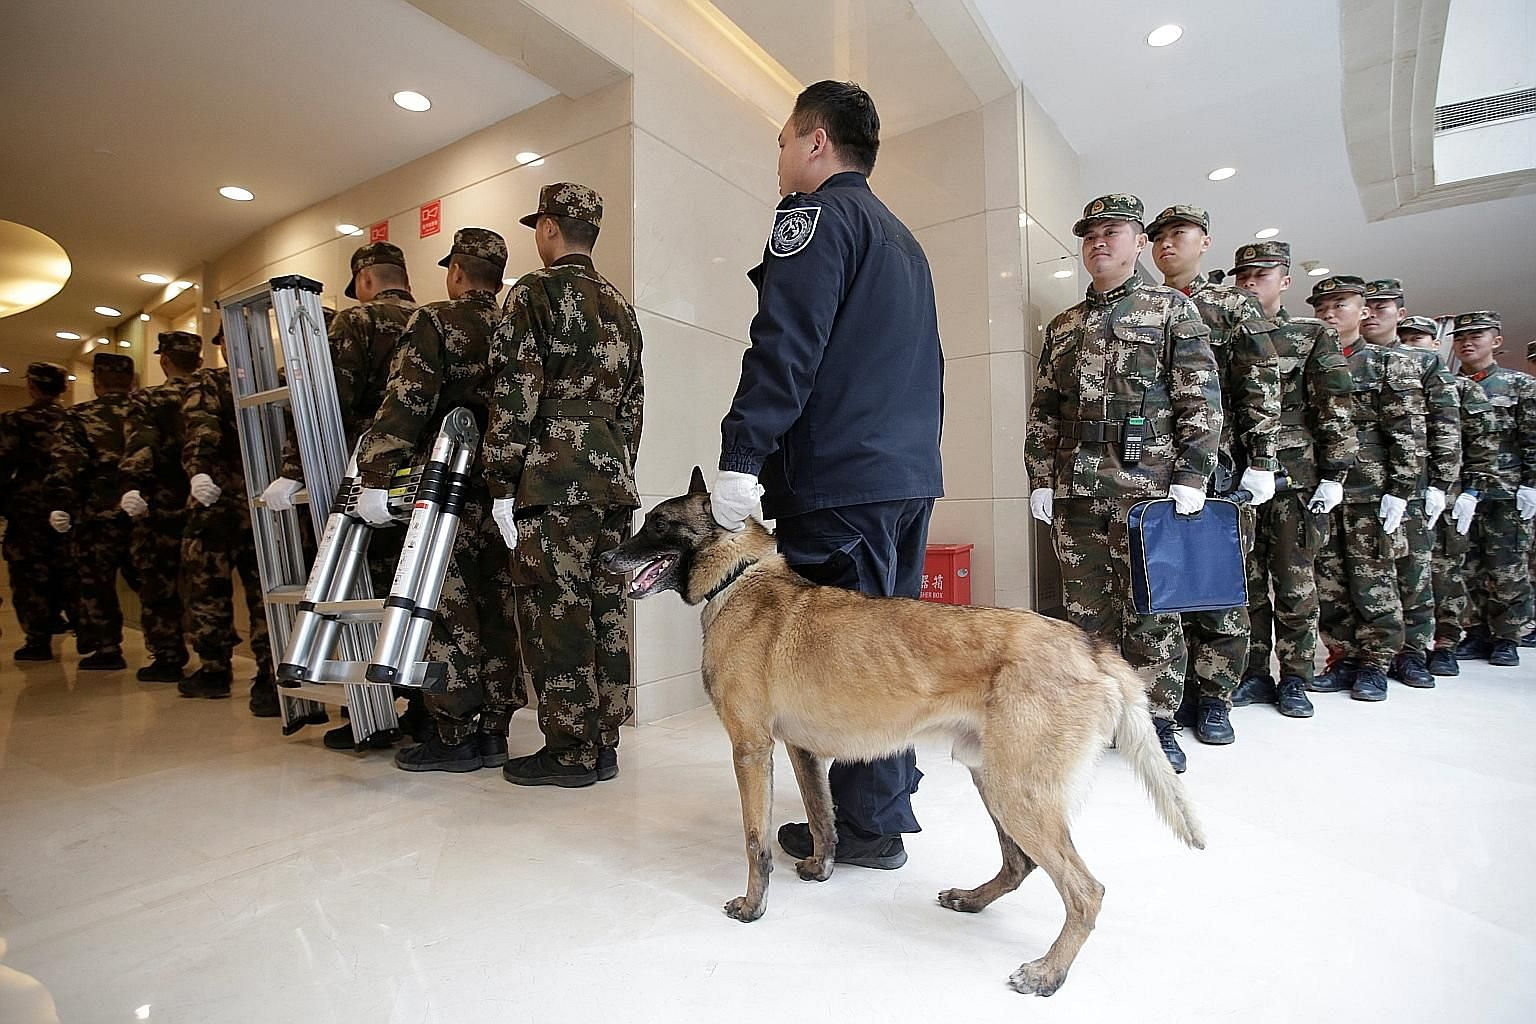 Paramilitary policemen waiting with a security dog outside the media centre for the Chinese People's Political Consultative Conference and the National People's Congress in Beijing yesterday.